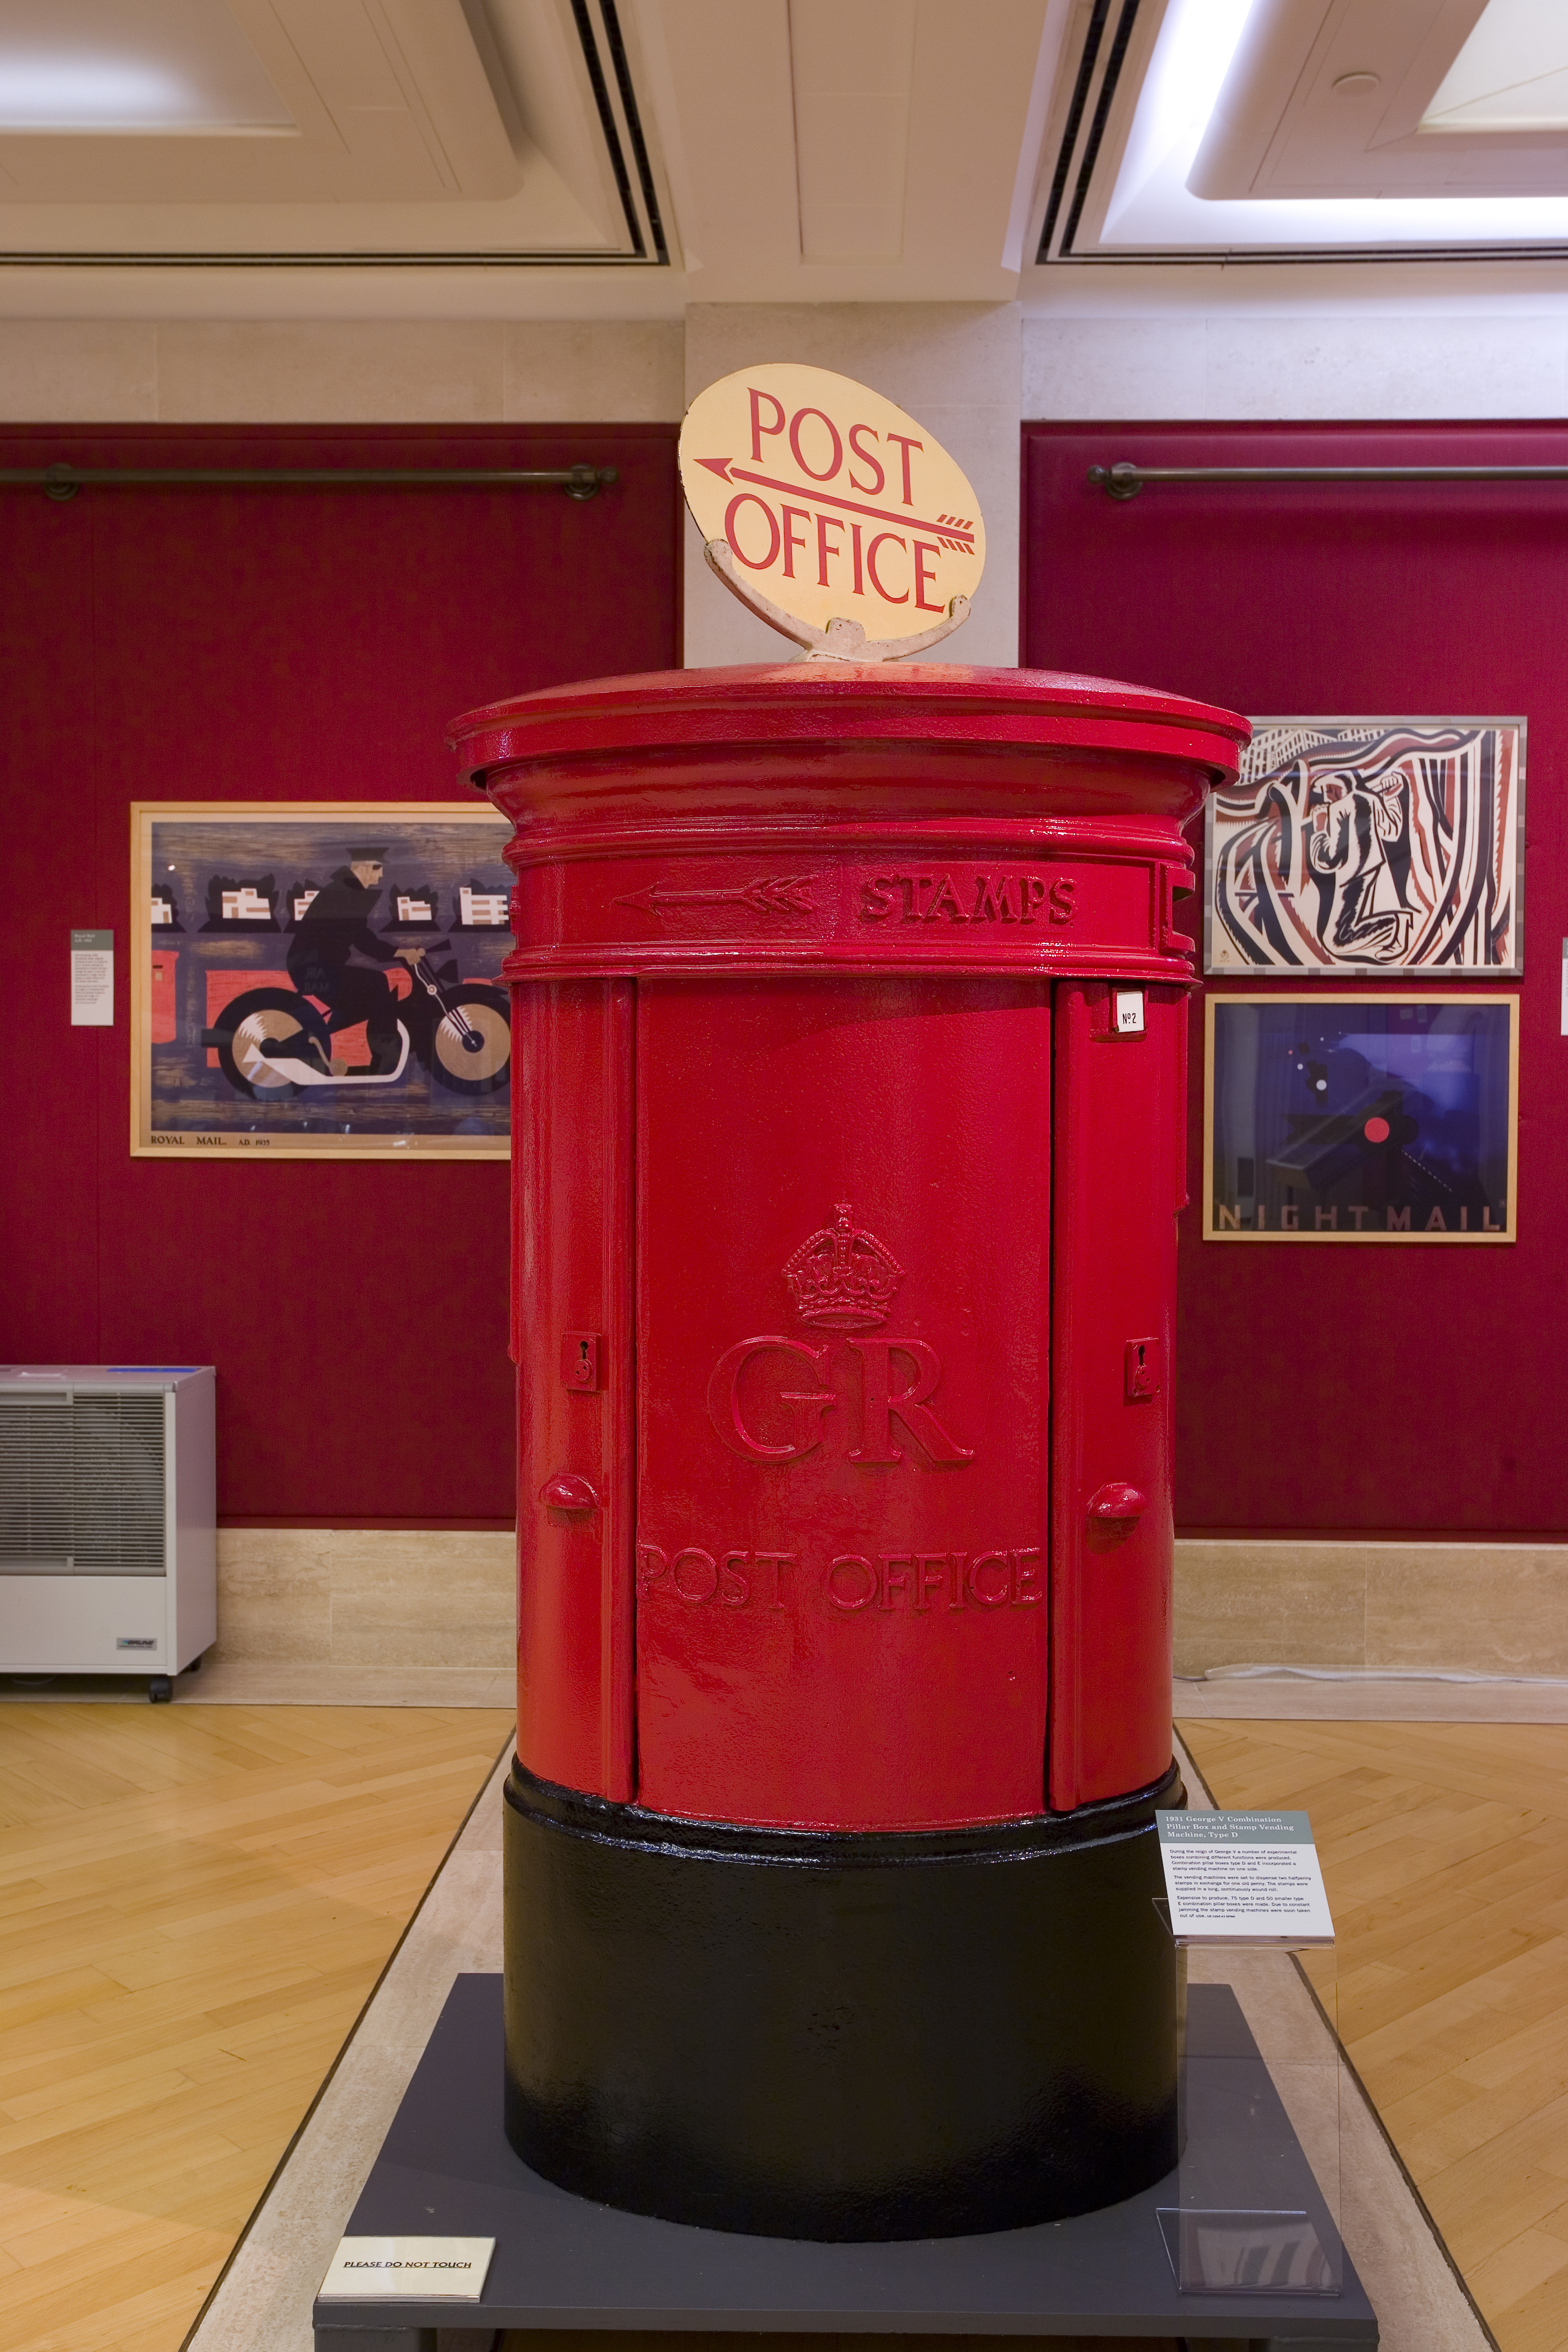 1931 George V Combination Pillar Box and Stamp Vending Machine, Type D